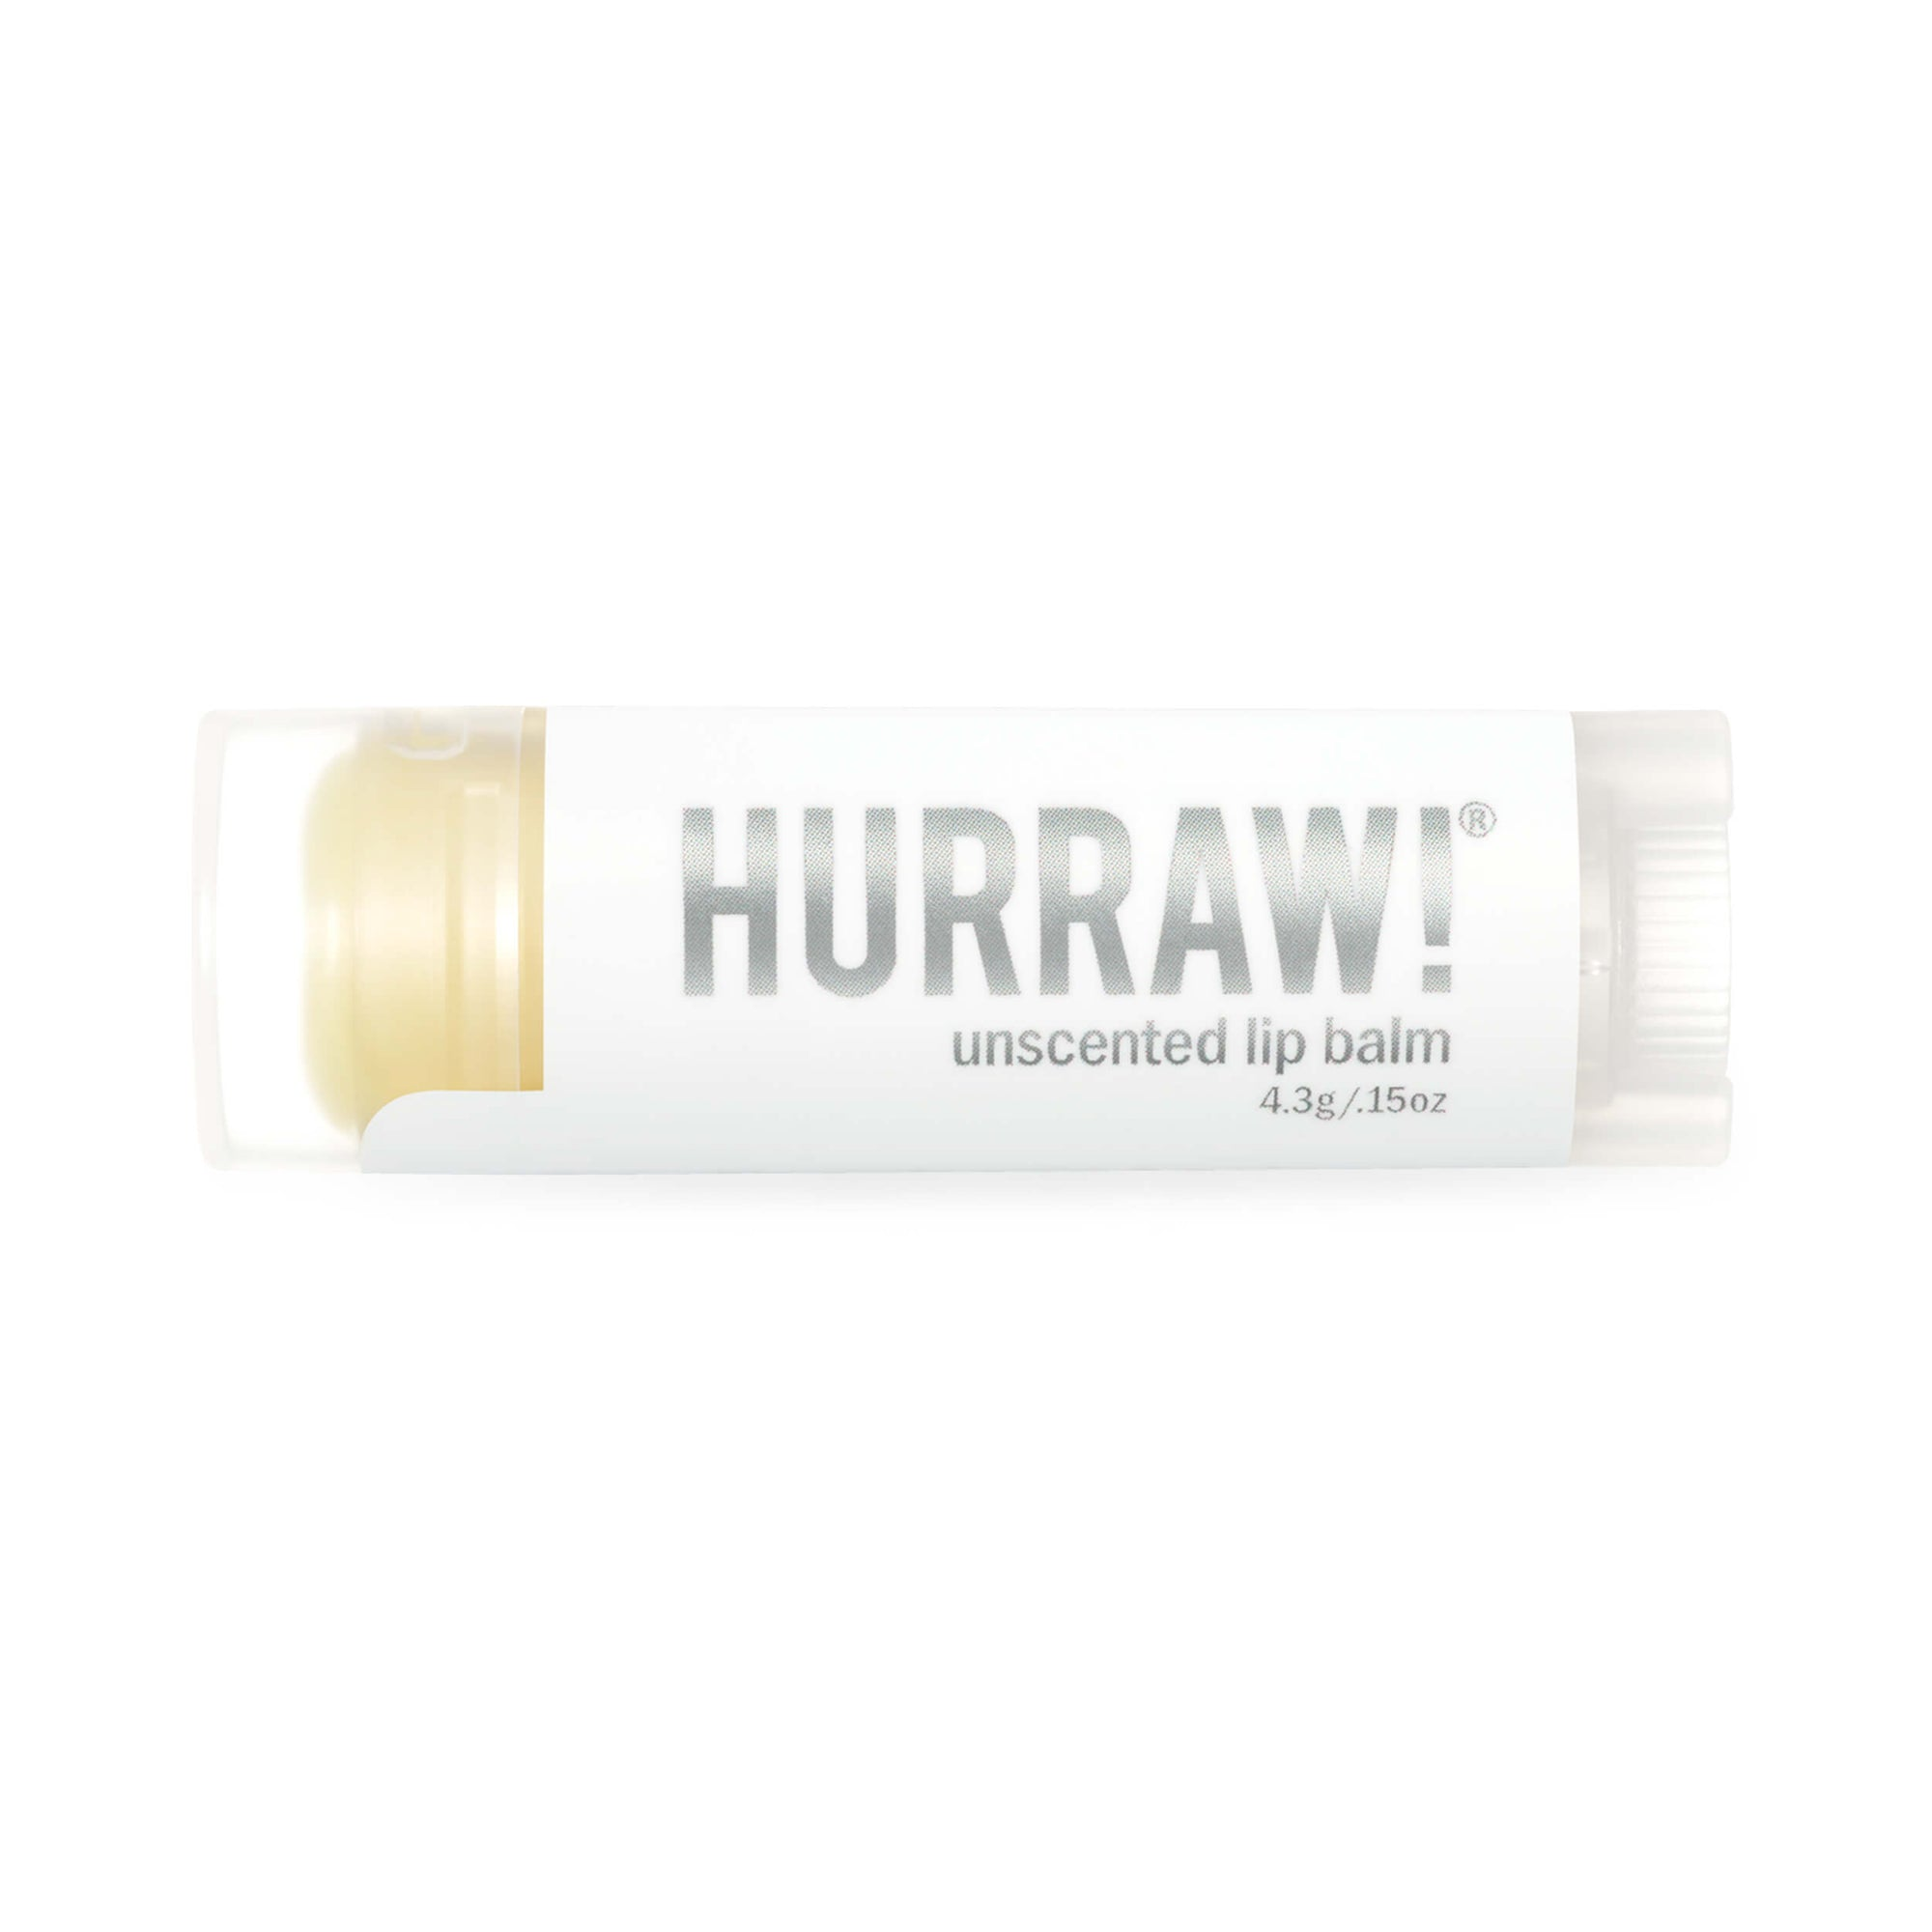 Hurraw! Unscented Lip Balm 4.3g